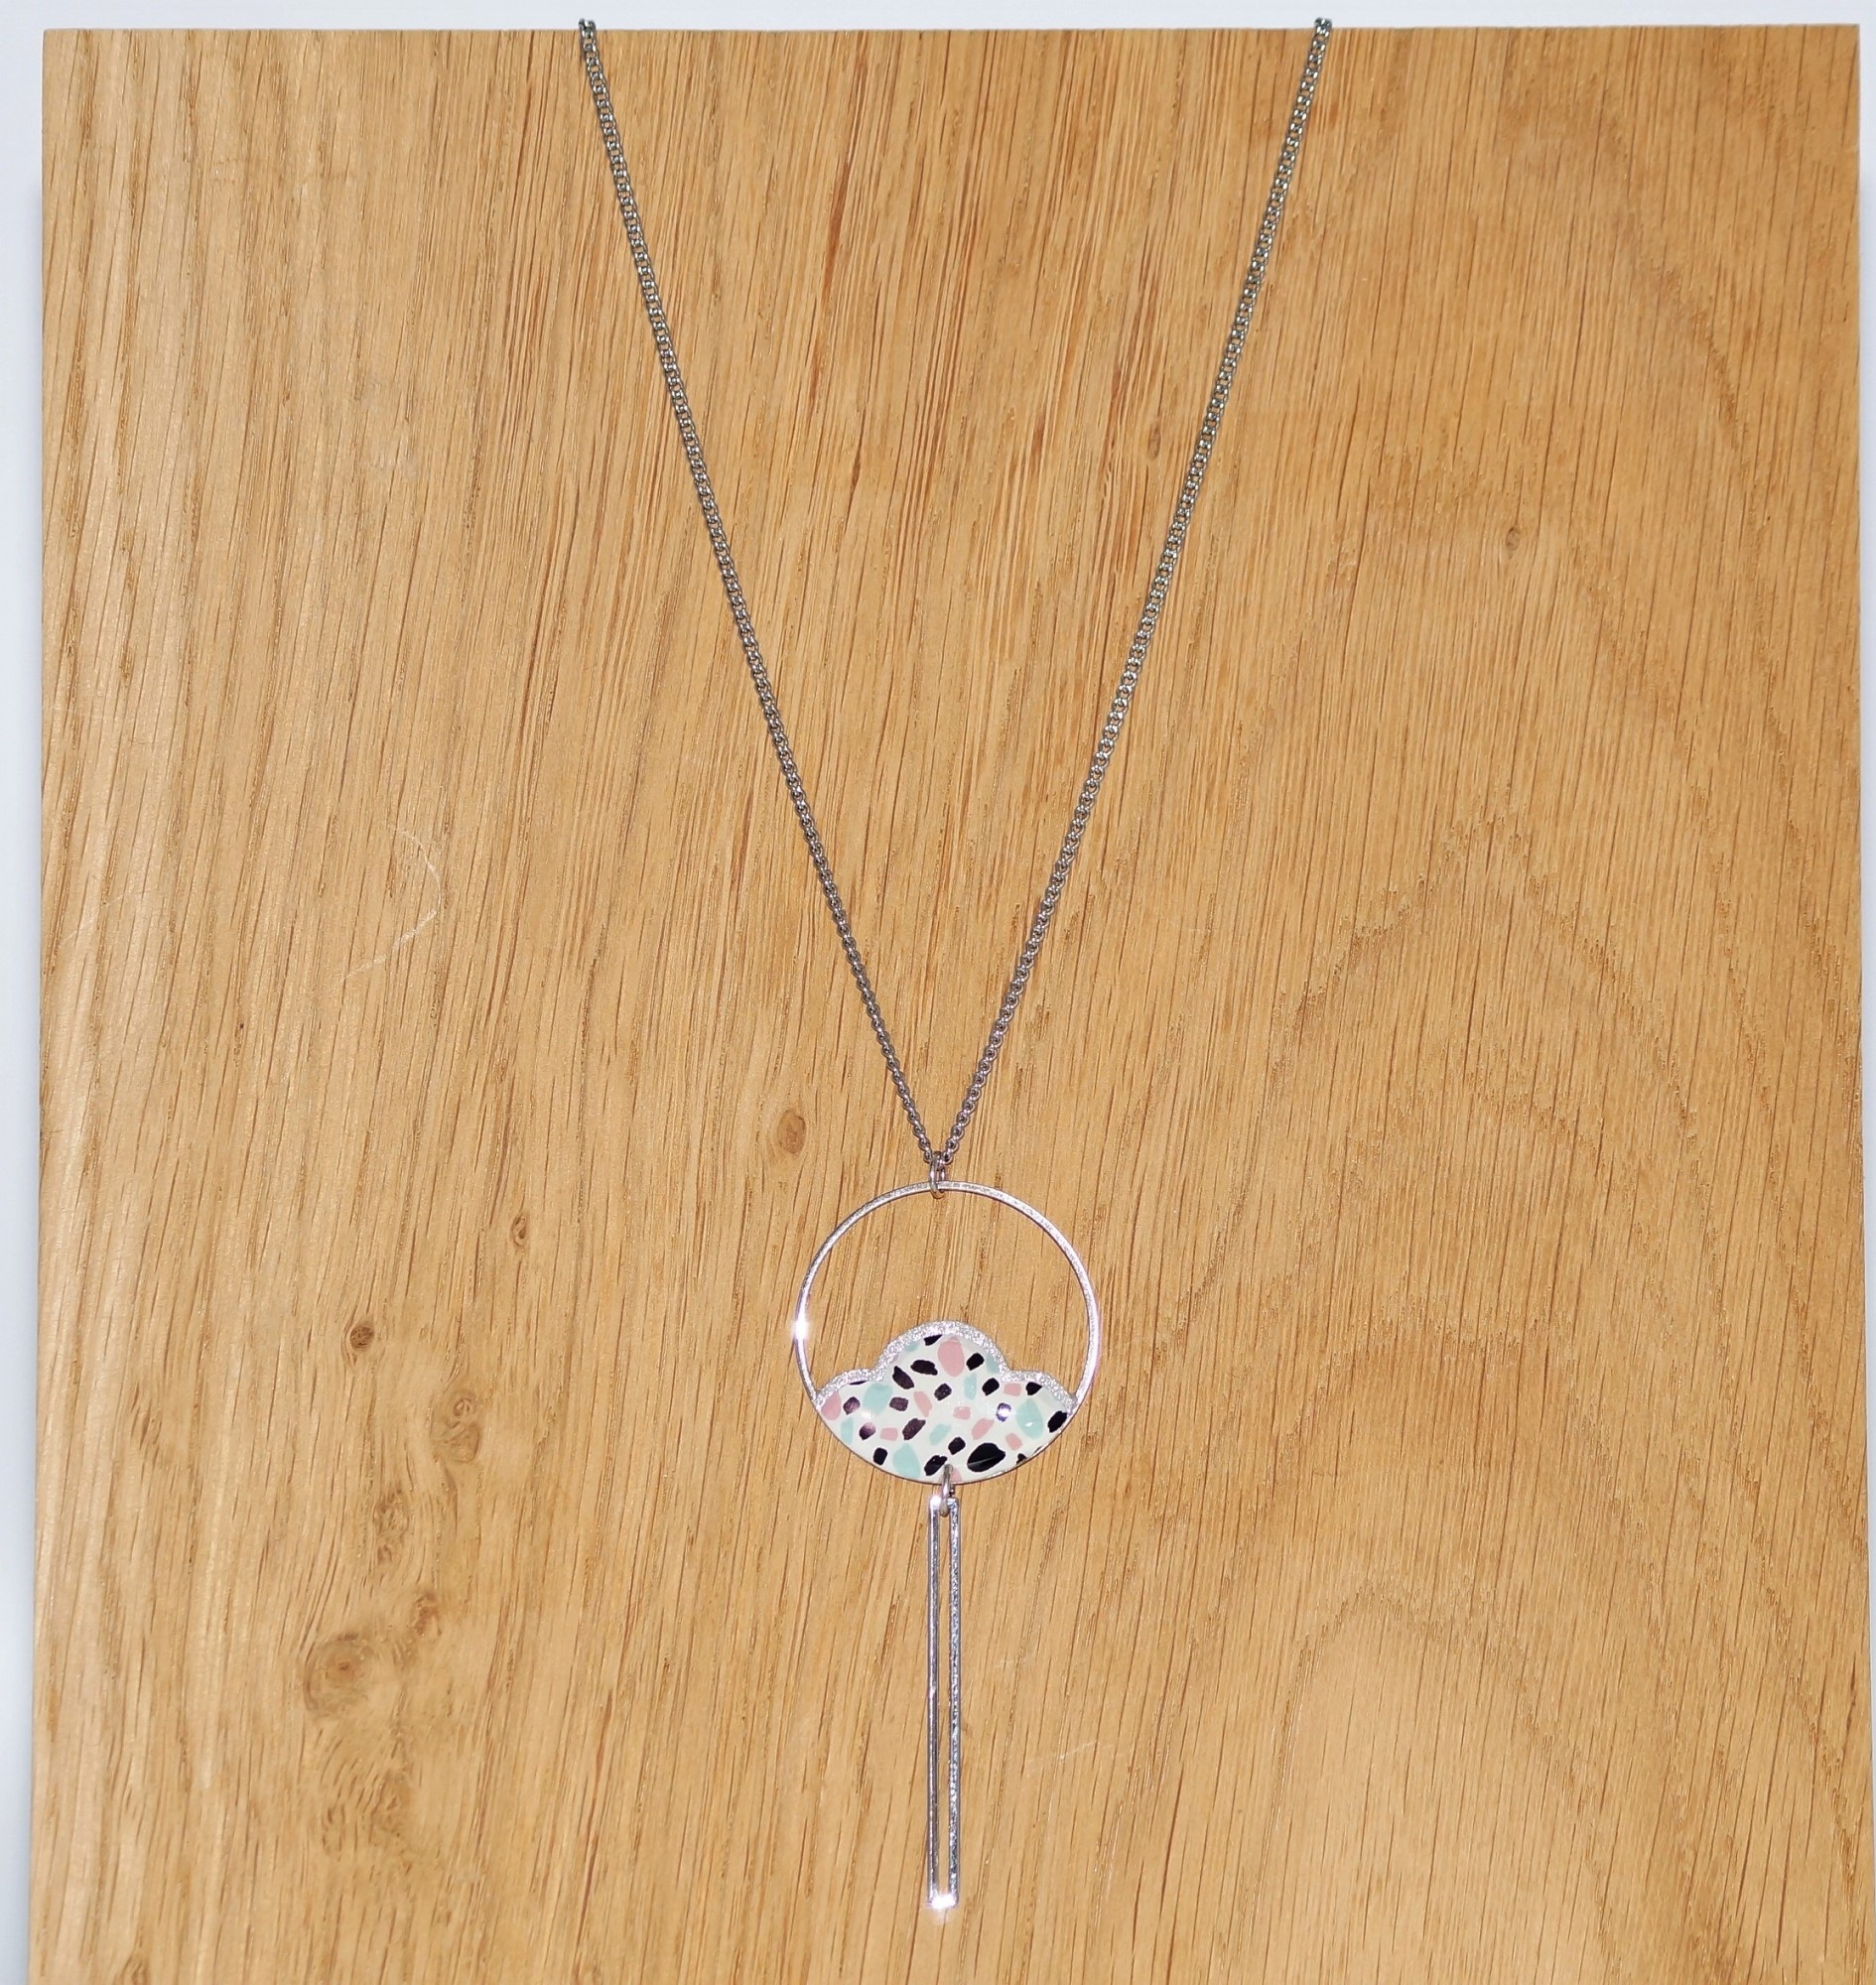 End necklace and colorful Belle Camille Camellia Silver